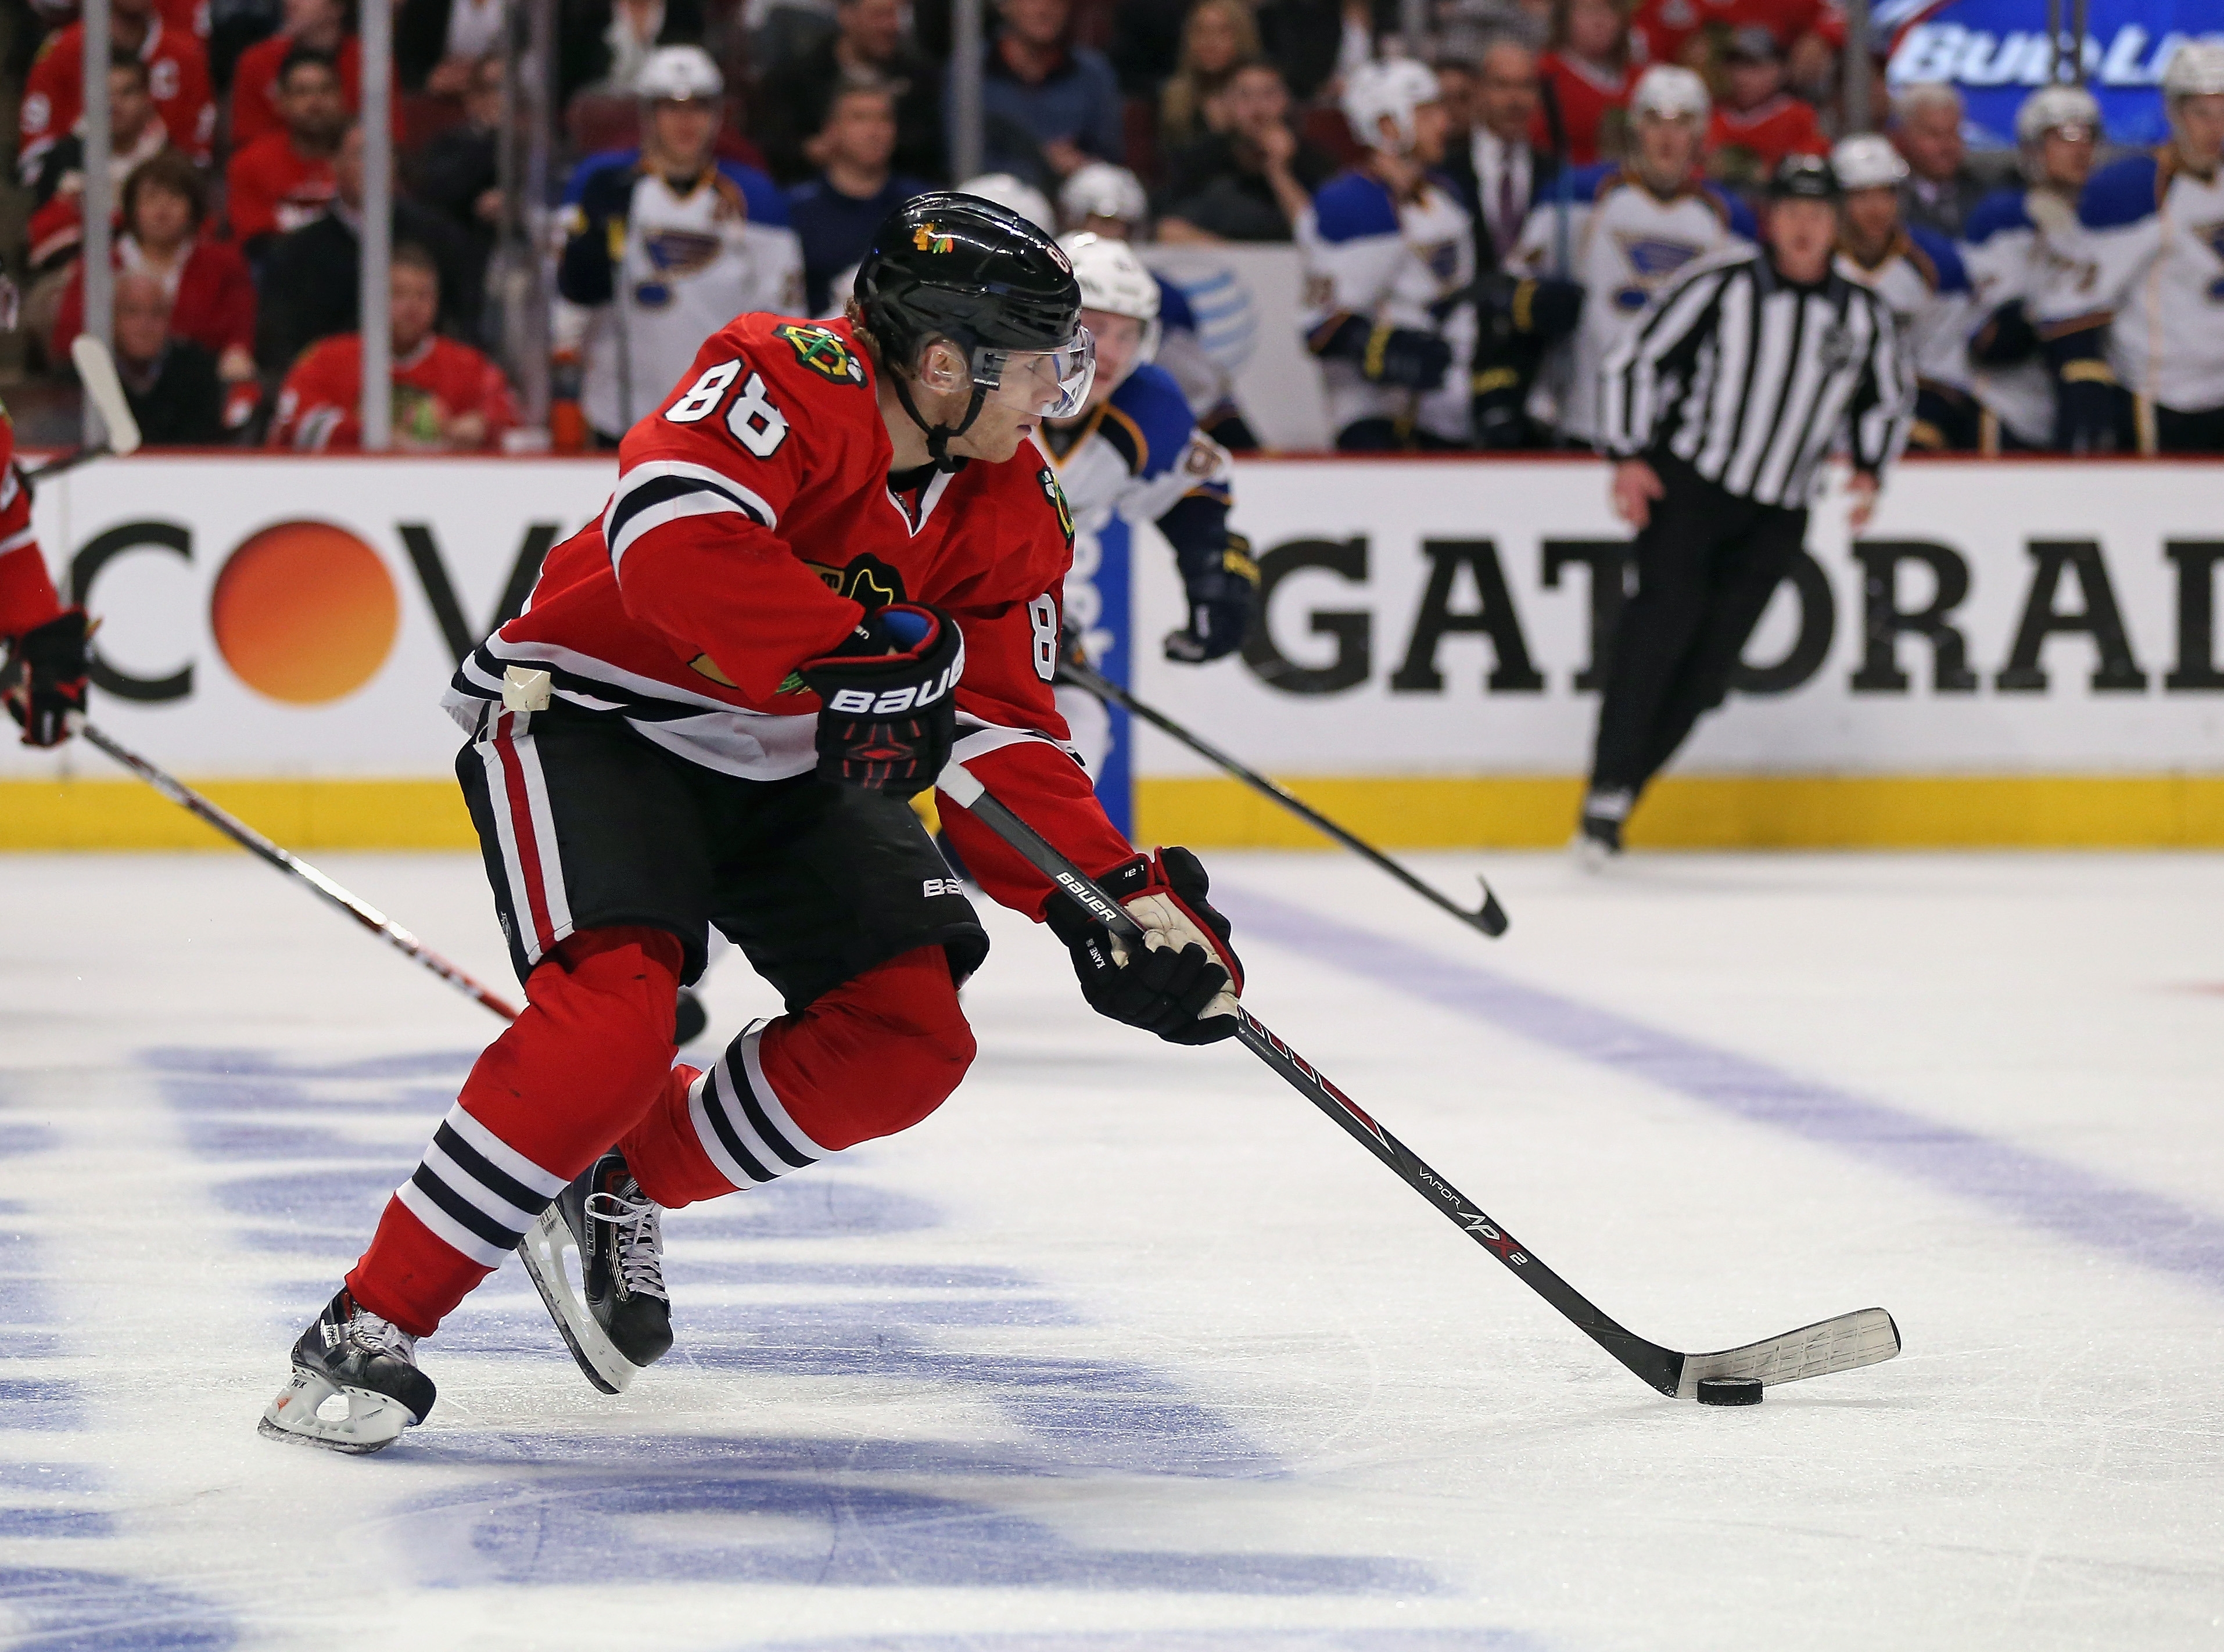 Patrick Kane and the Chicago Blackhawks are 6-0 in games in which a series can be clinched during coach Joel Quenneville's tenure.